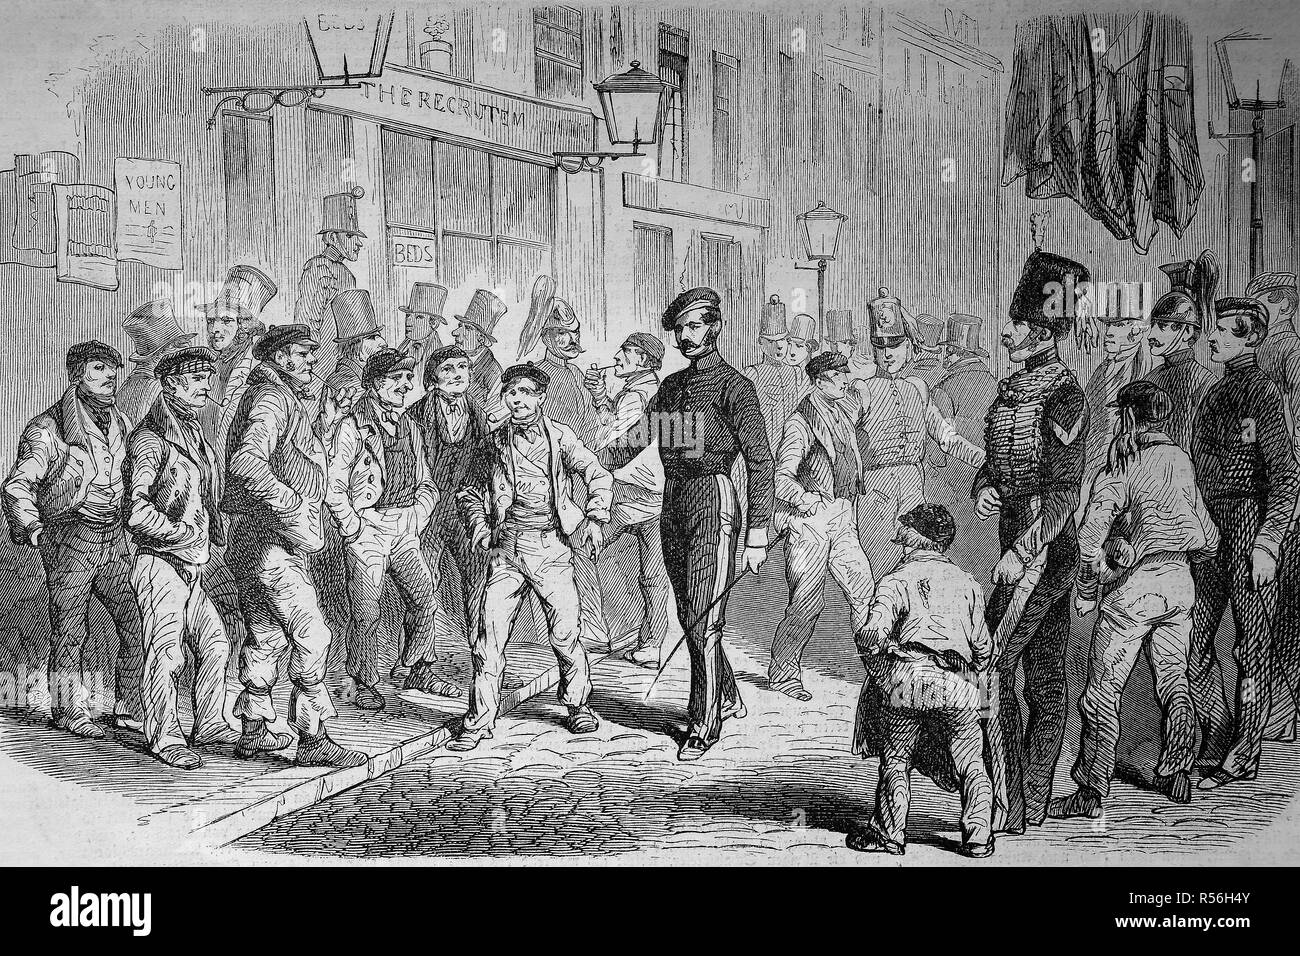 Crimean War 1855, Recruitment of men for the English army, woodcut, England - Stock Image